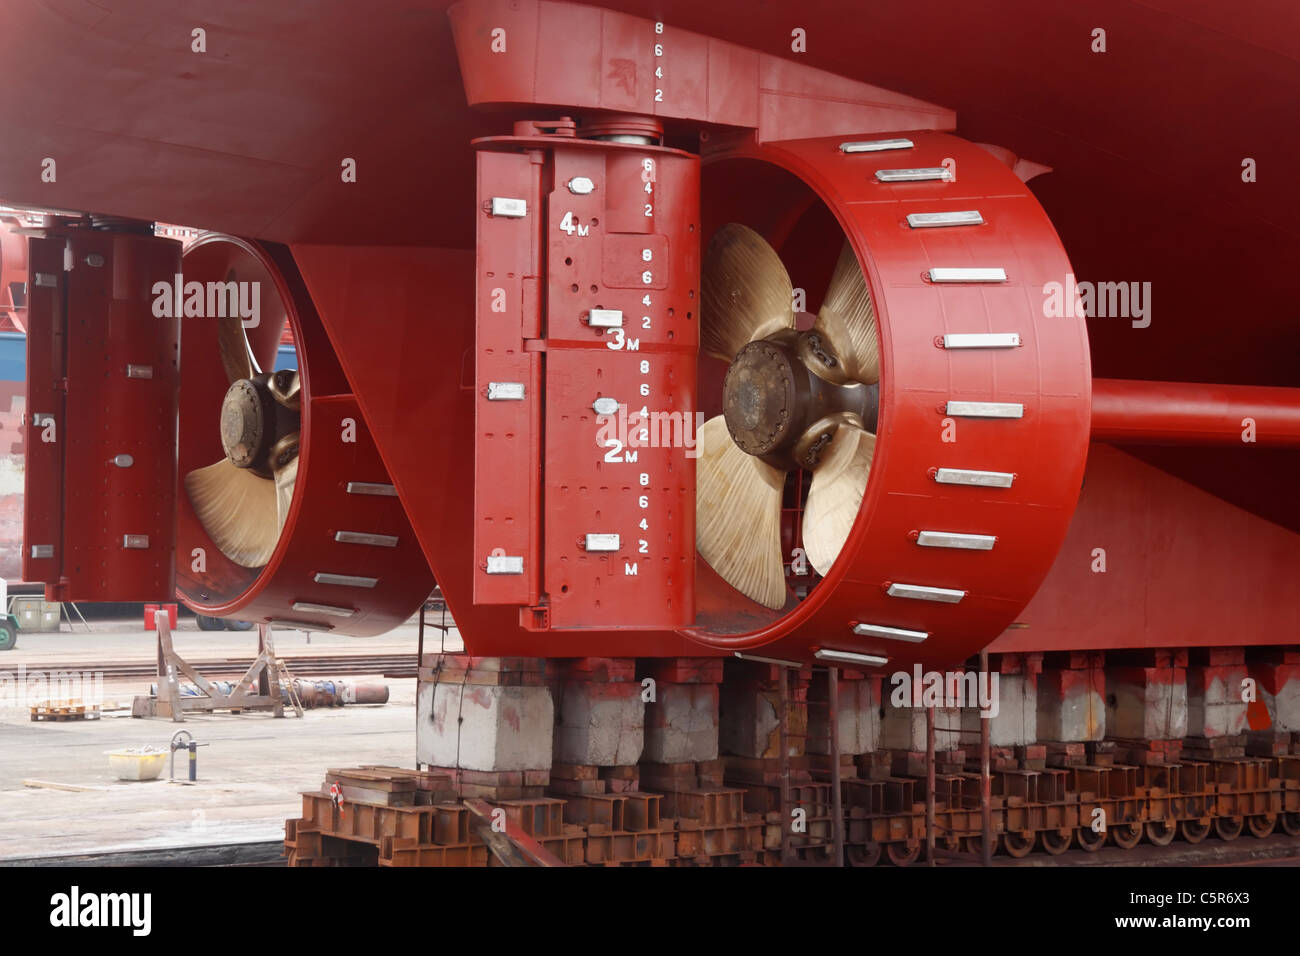 New propellers on ship in Drydock - Stock Image